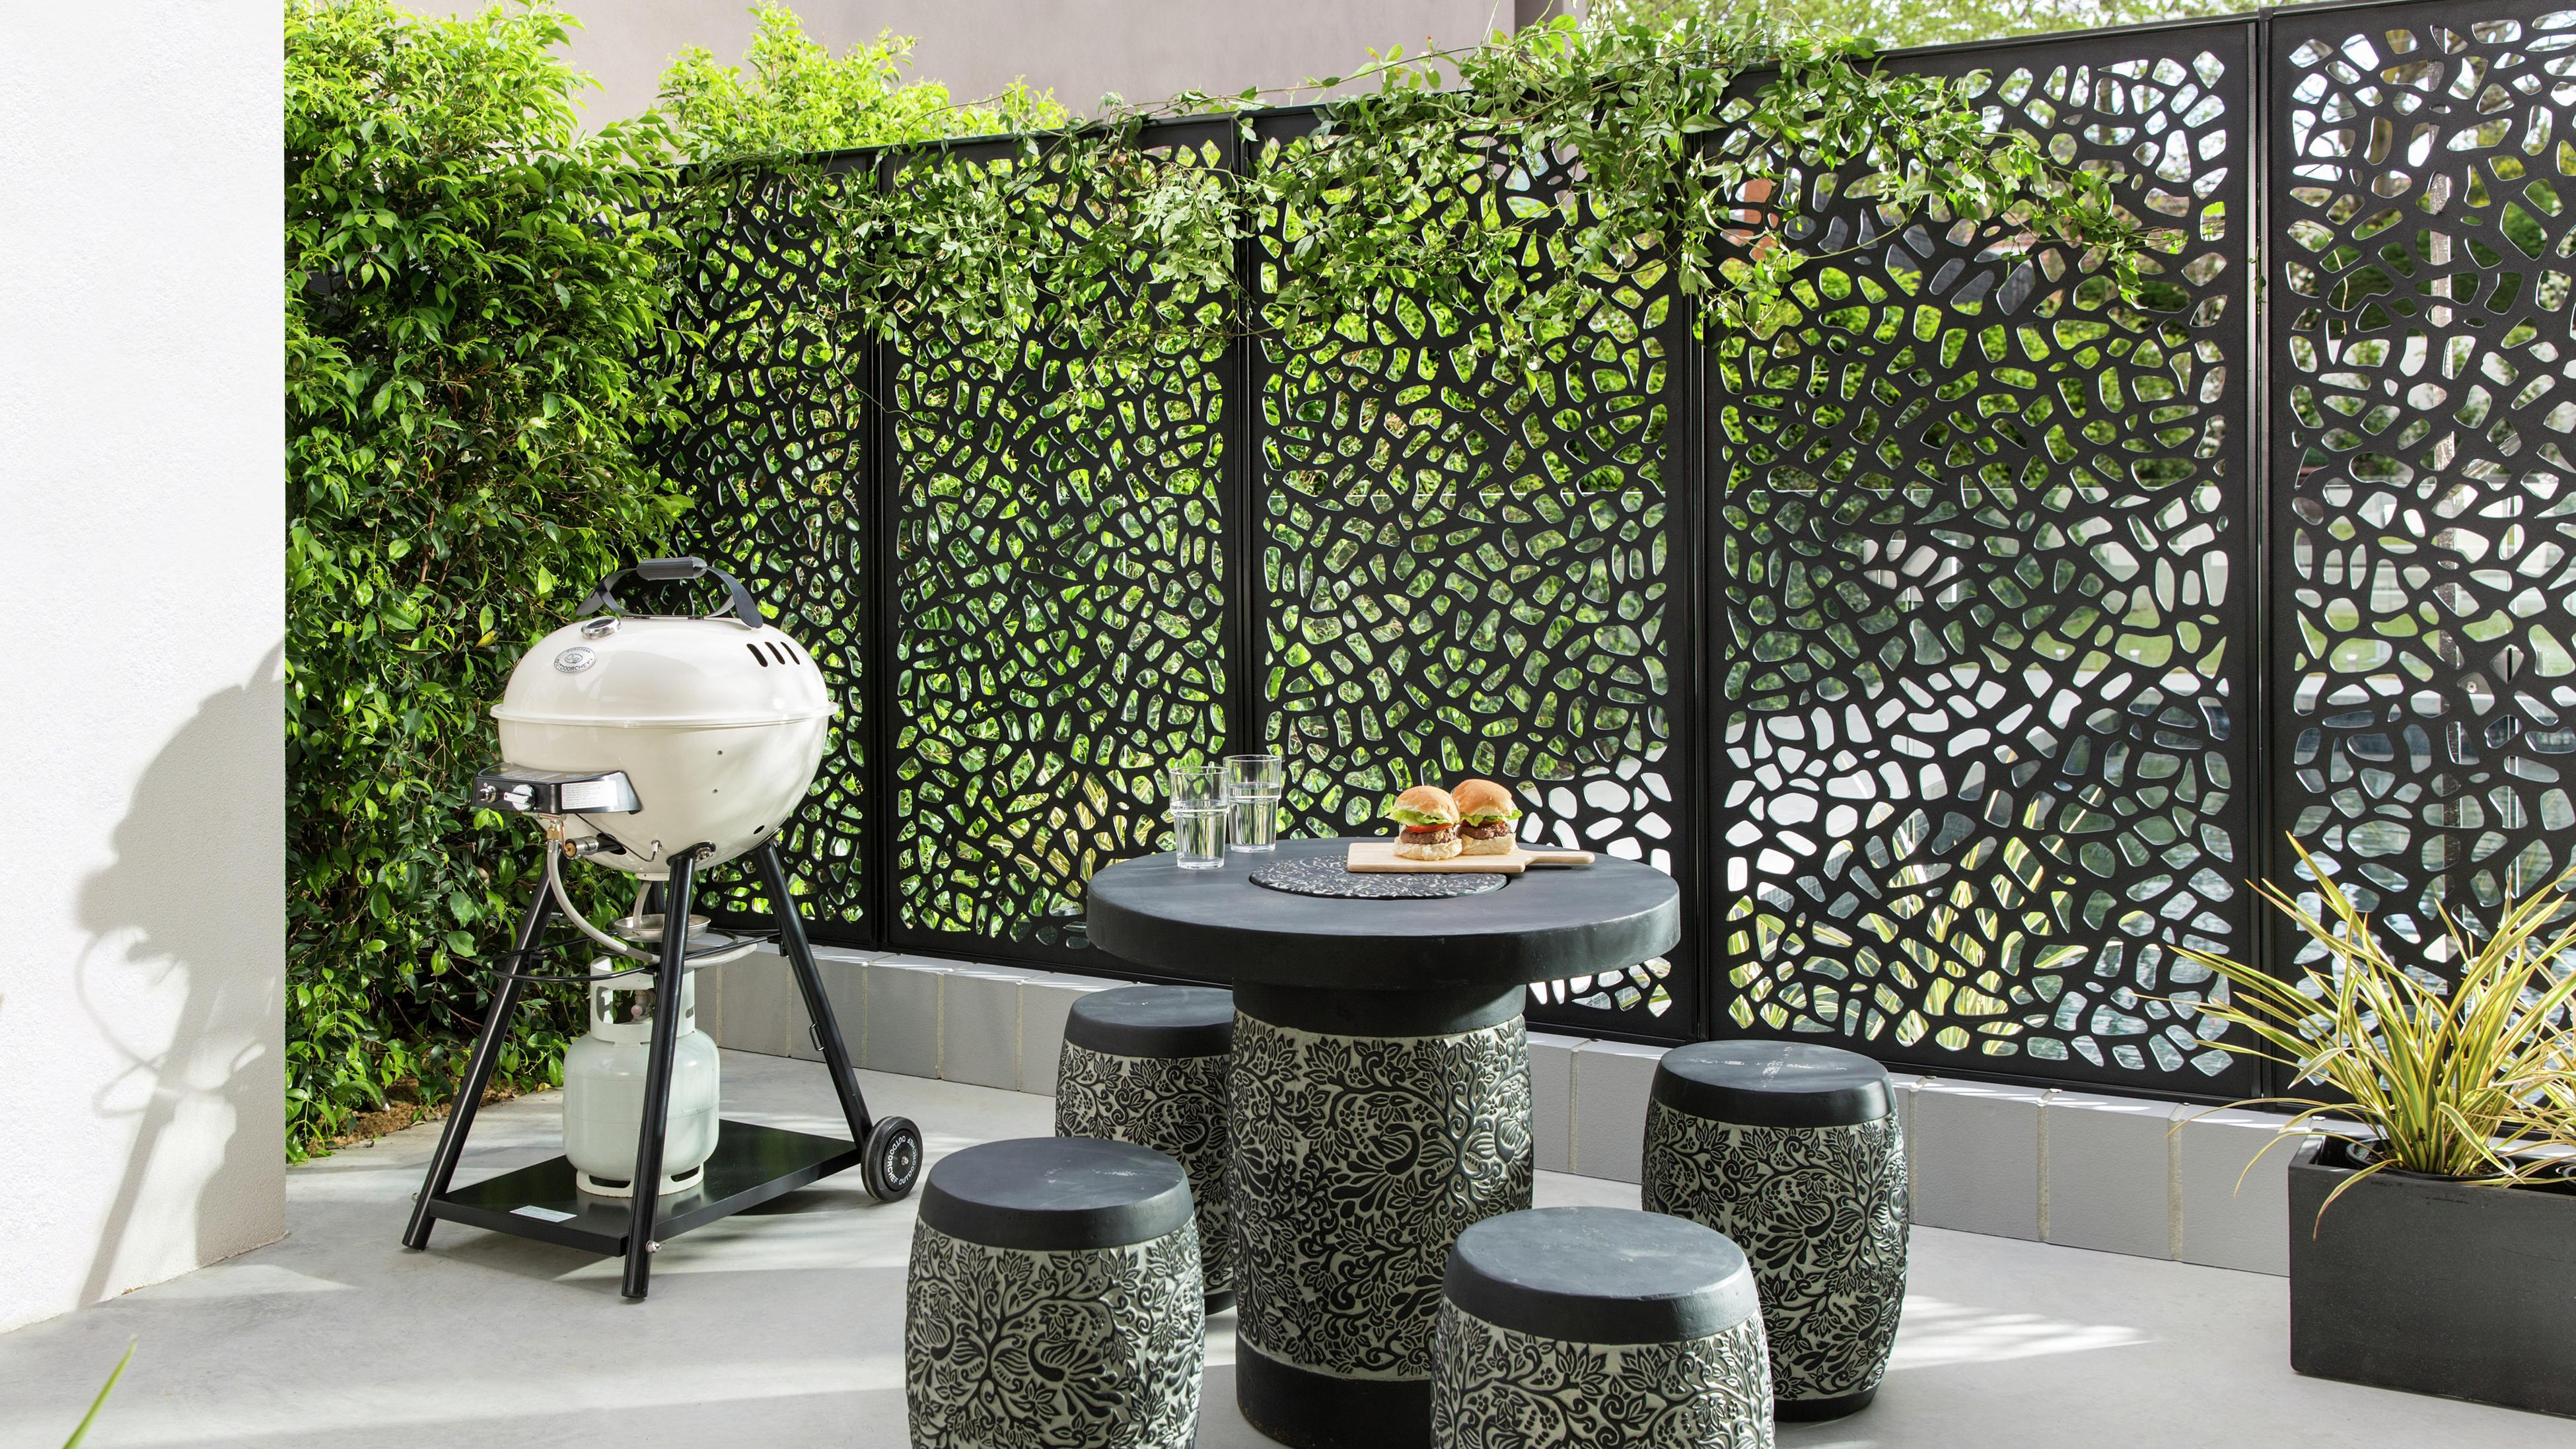 Kettle BBQ in outdoor entertaining area, also featuring monochromatic table and stools.